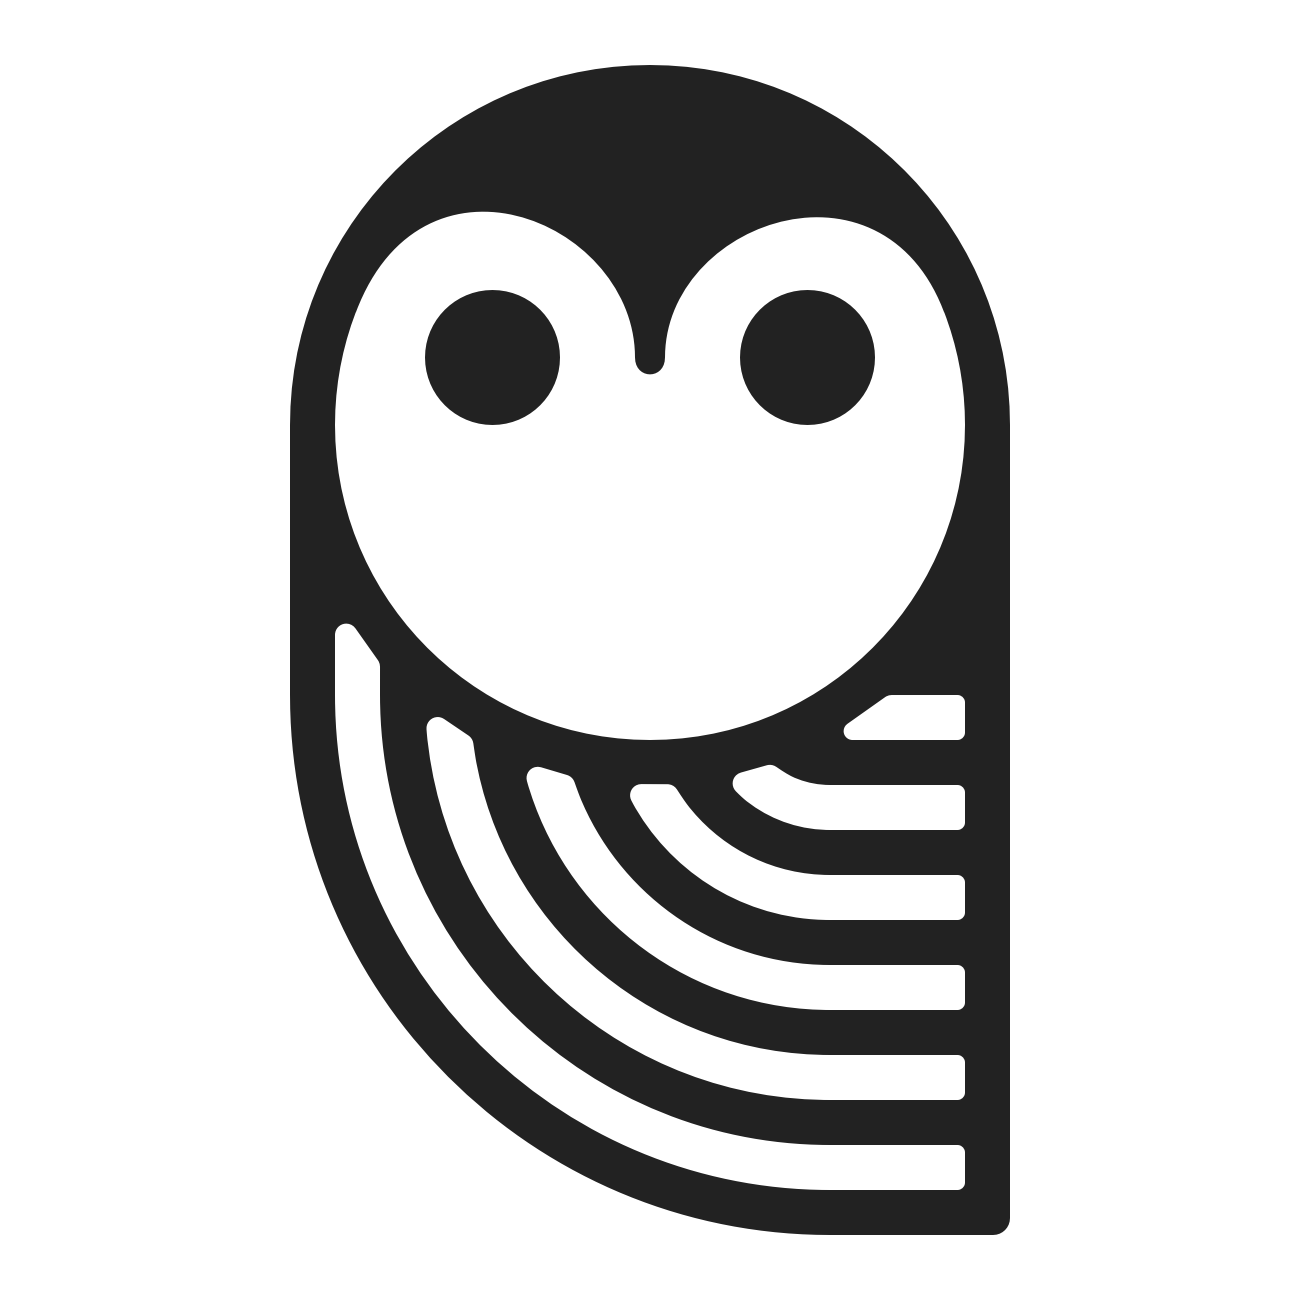 SendOwl - pricing, customer reviews, features, free plans, alternatives, comparisons, service costs.